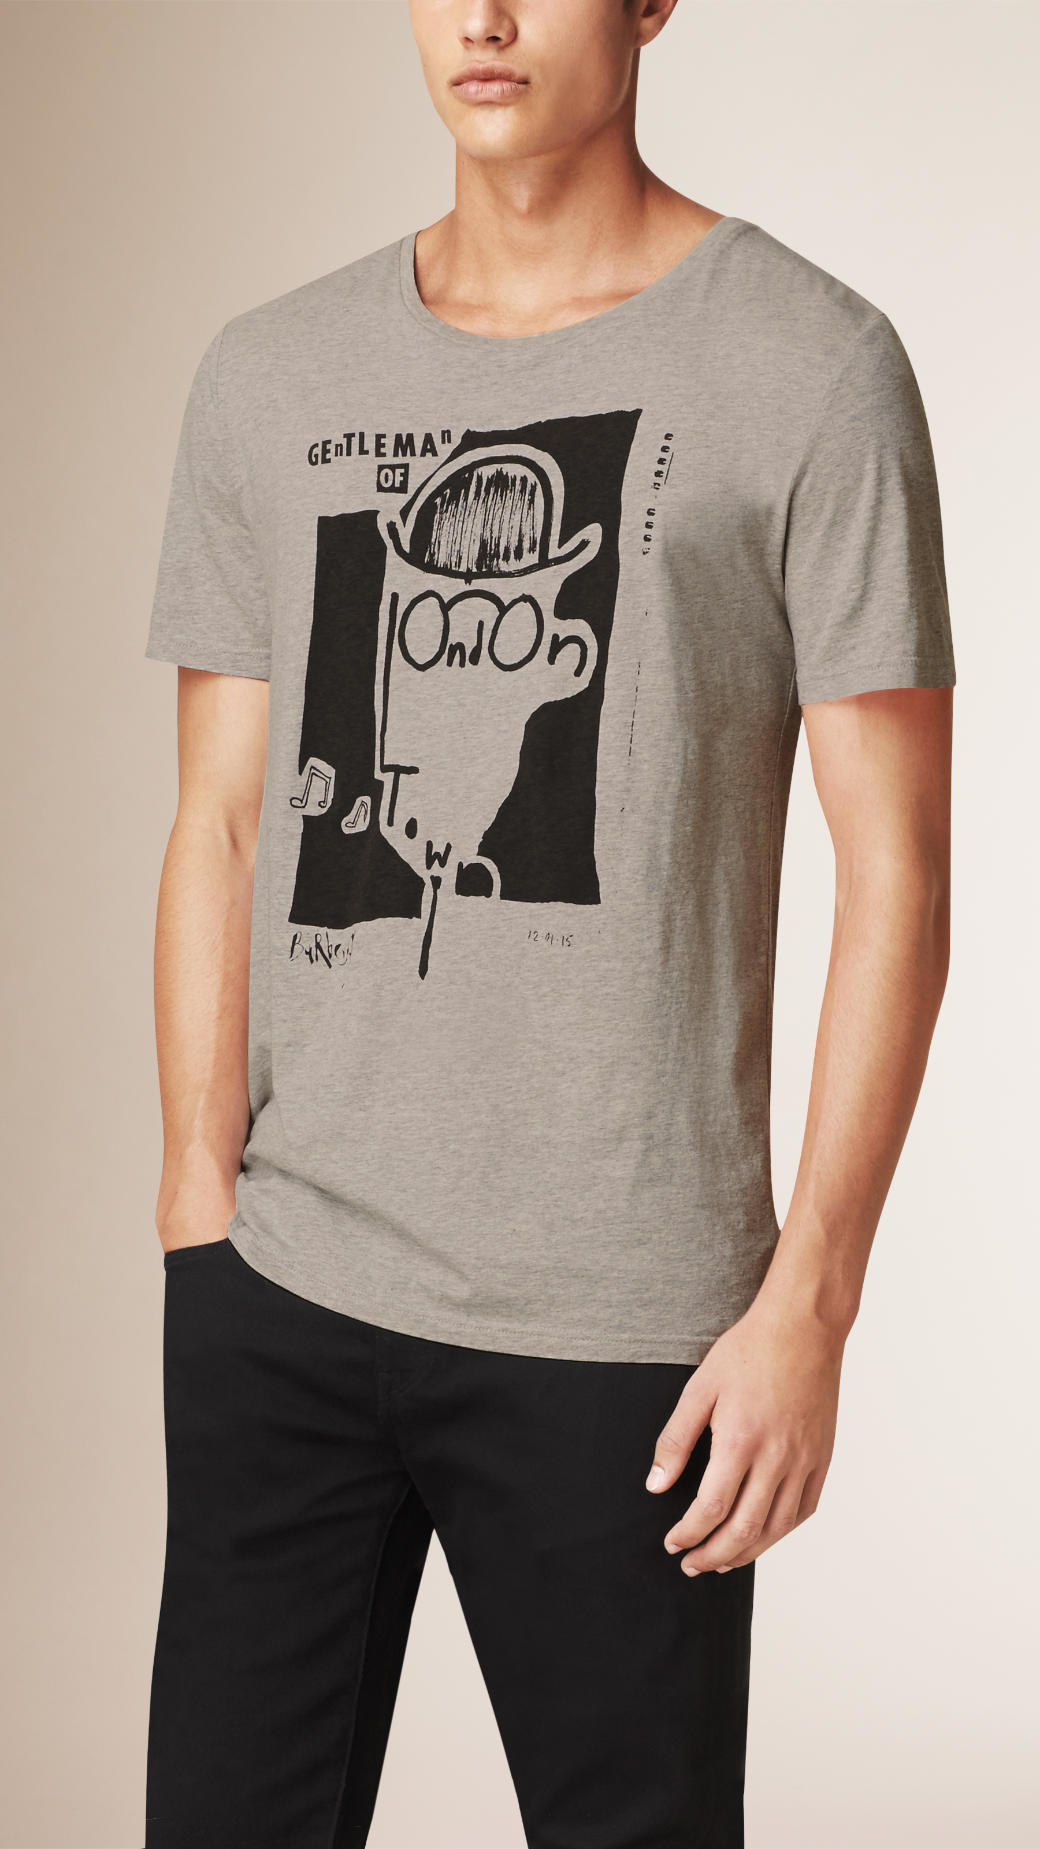 Burberry Gentleman Of London Graphic Cotton T Shirt In